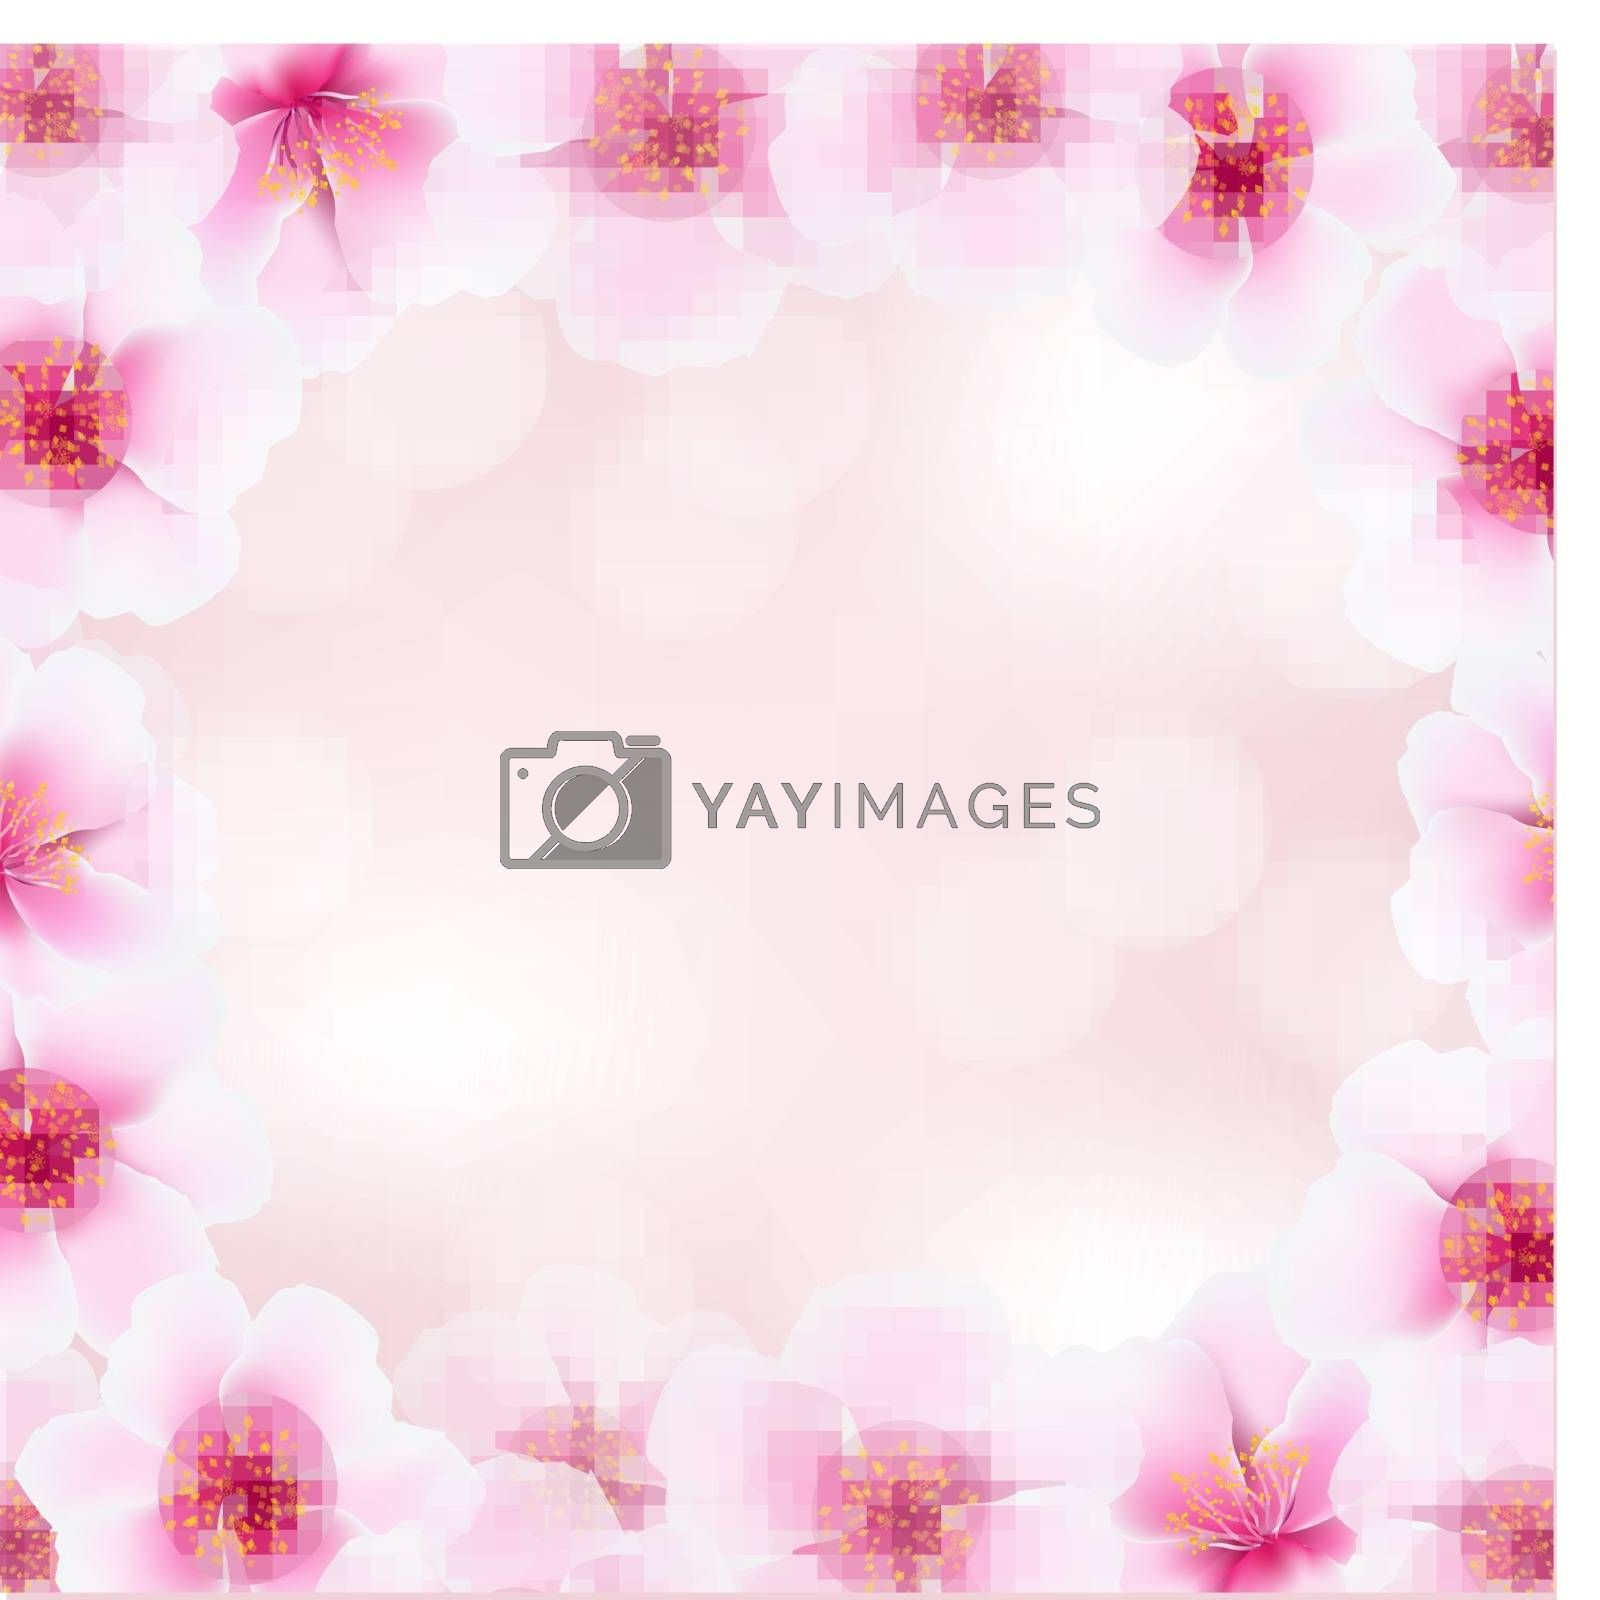 Cherry Flower Frame With Blurred Background by barbaliss